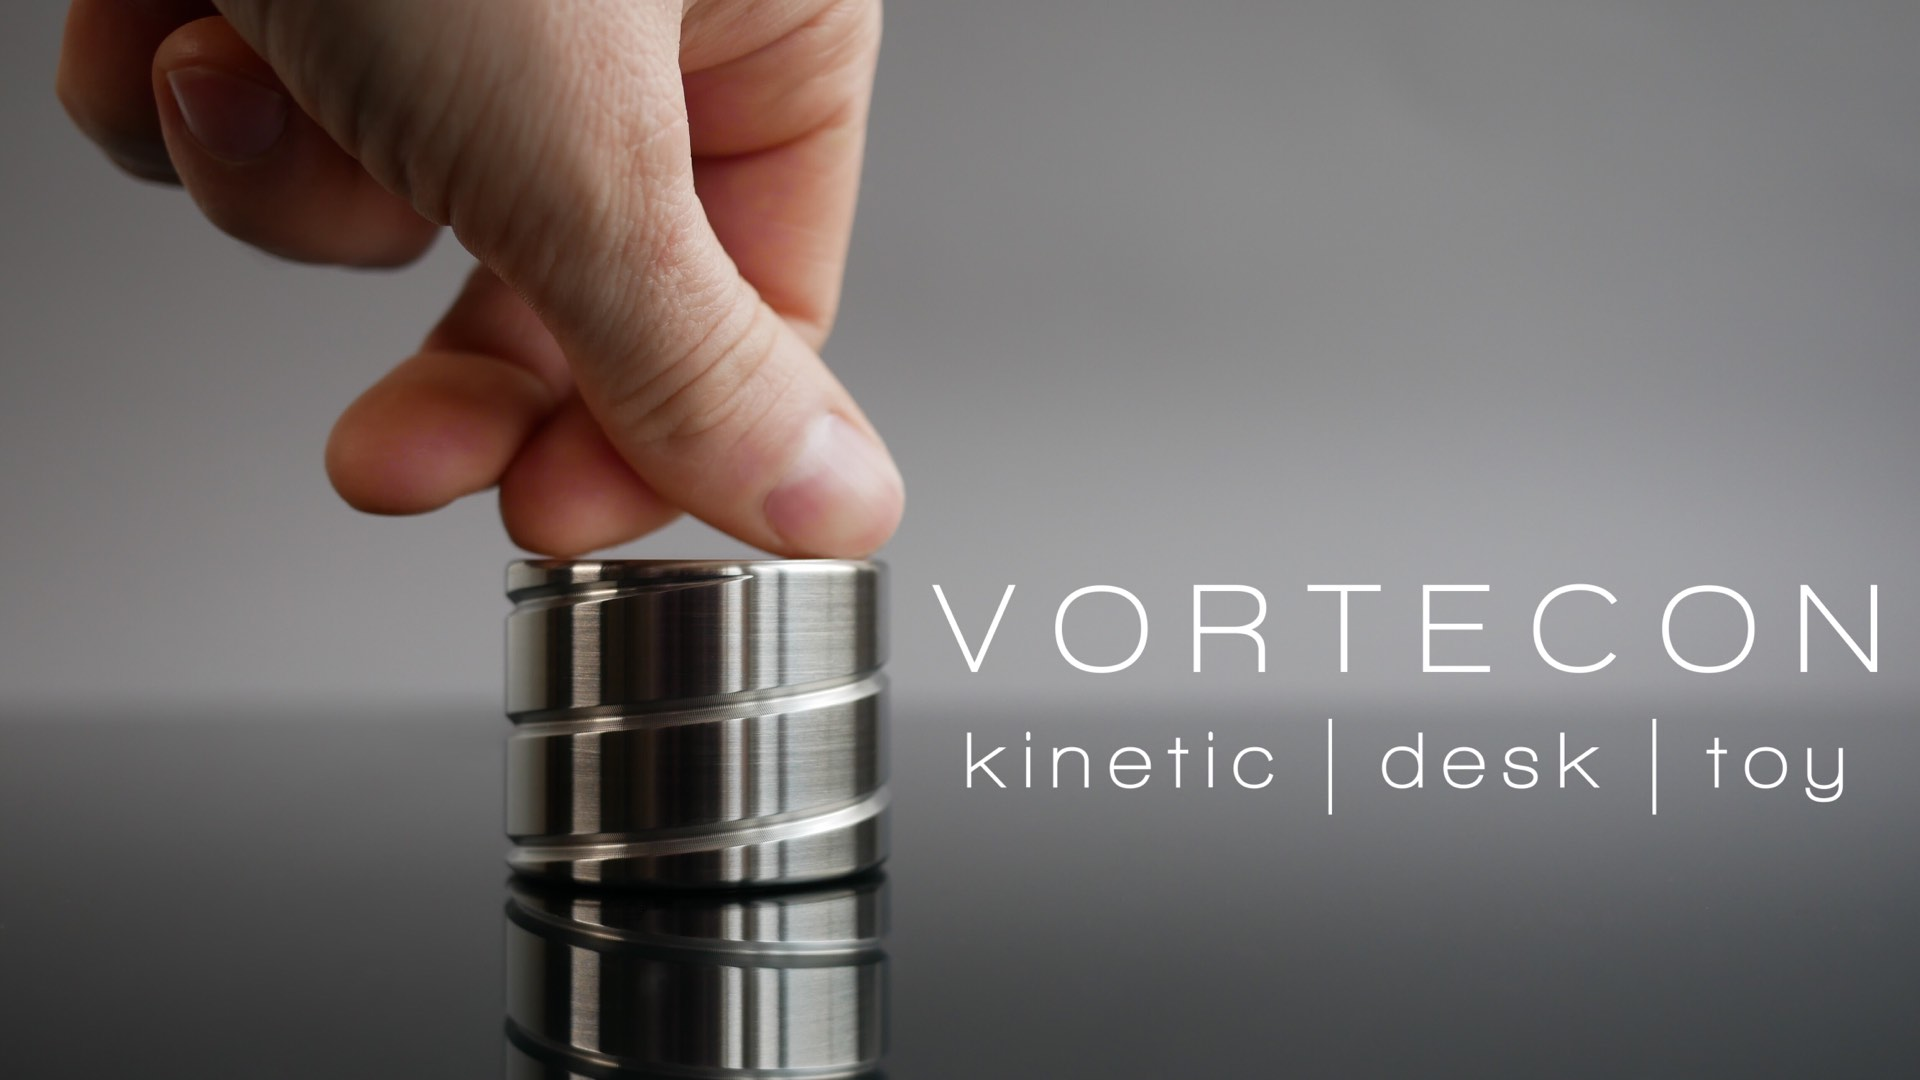 vortecon-kinetic-desk-toy